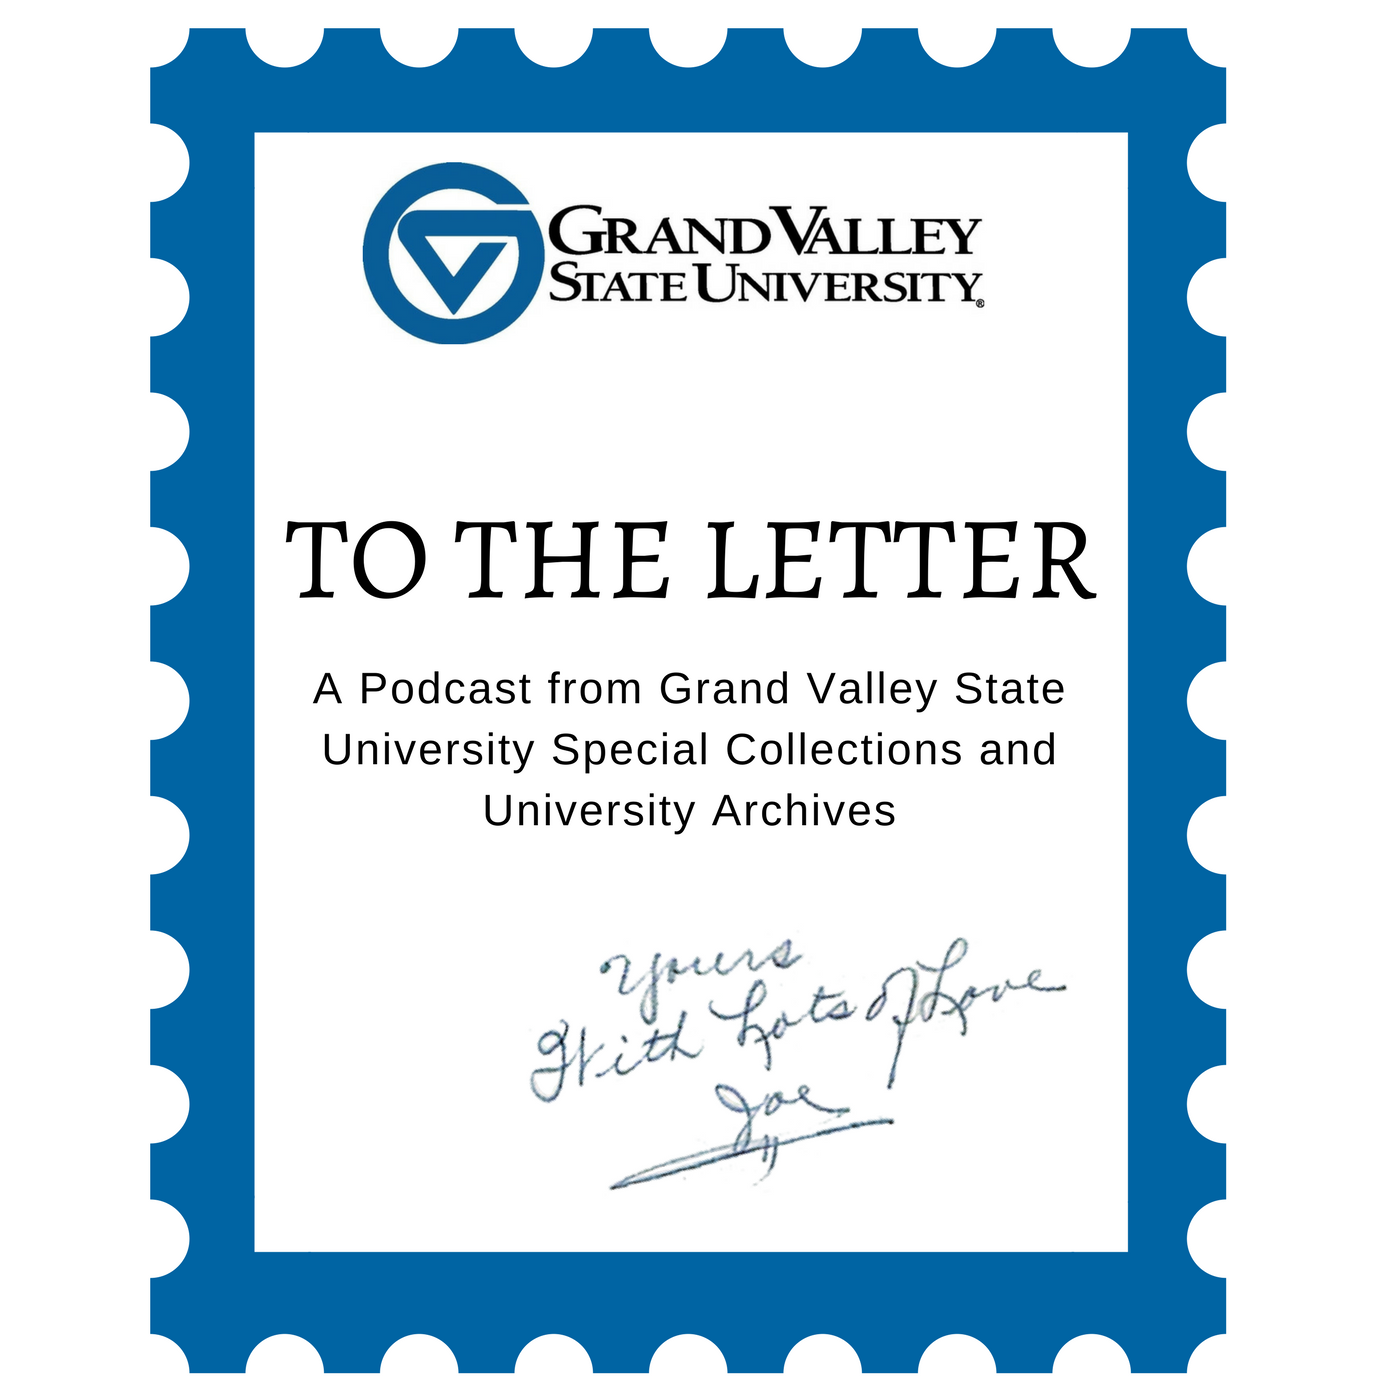 To The Letter Episode 14: Concentration Camps